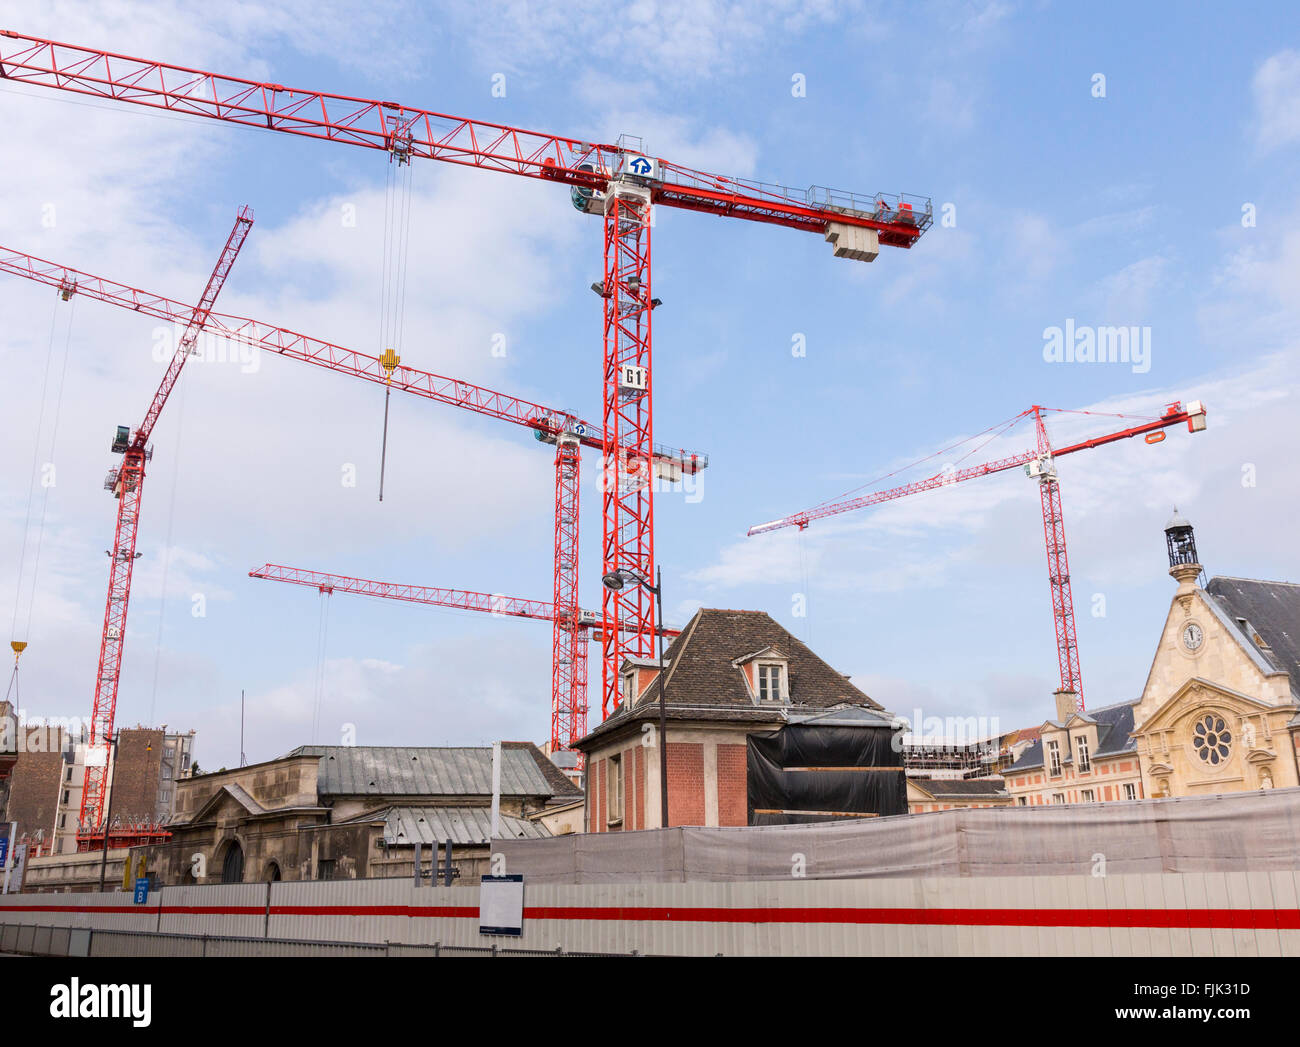 Construction cranes in Paris. A major redevelopment project for mixed residential and commercial space in a historic - Stock Image